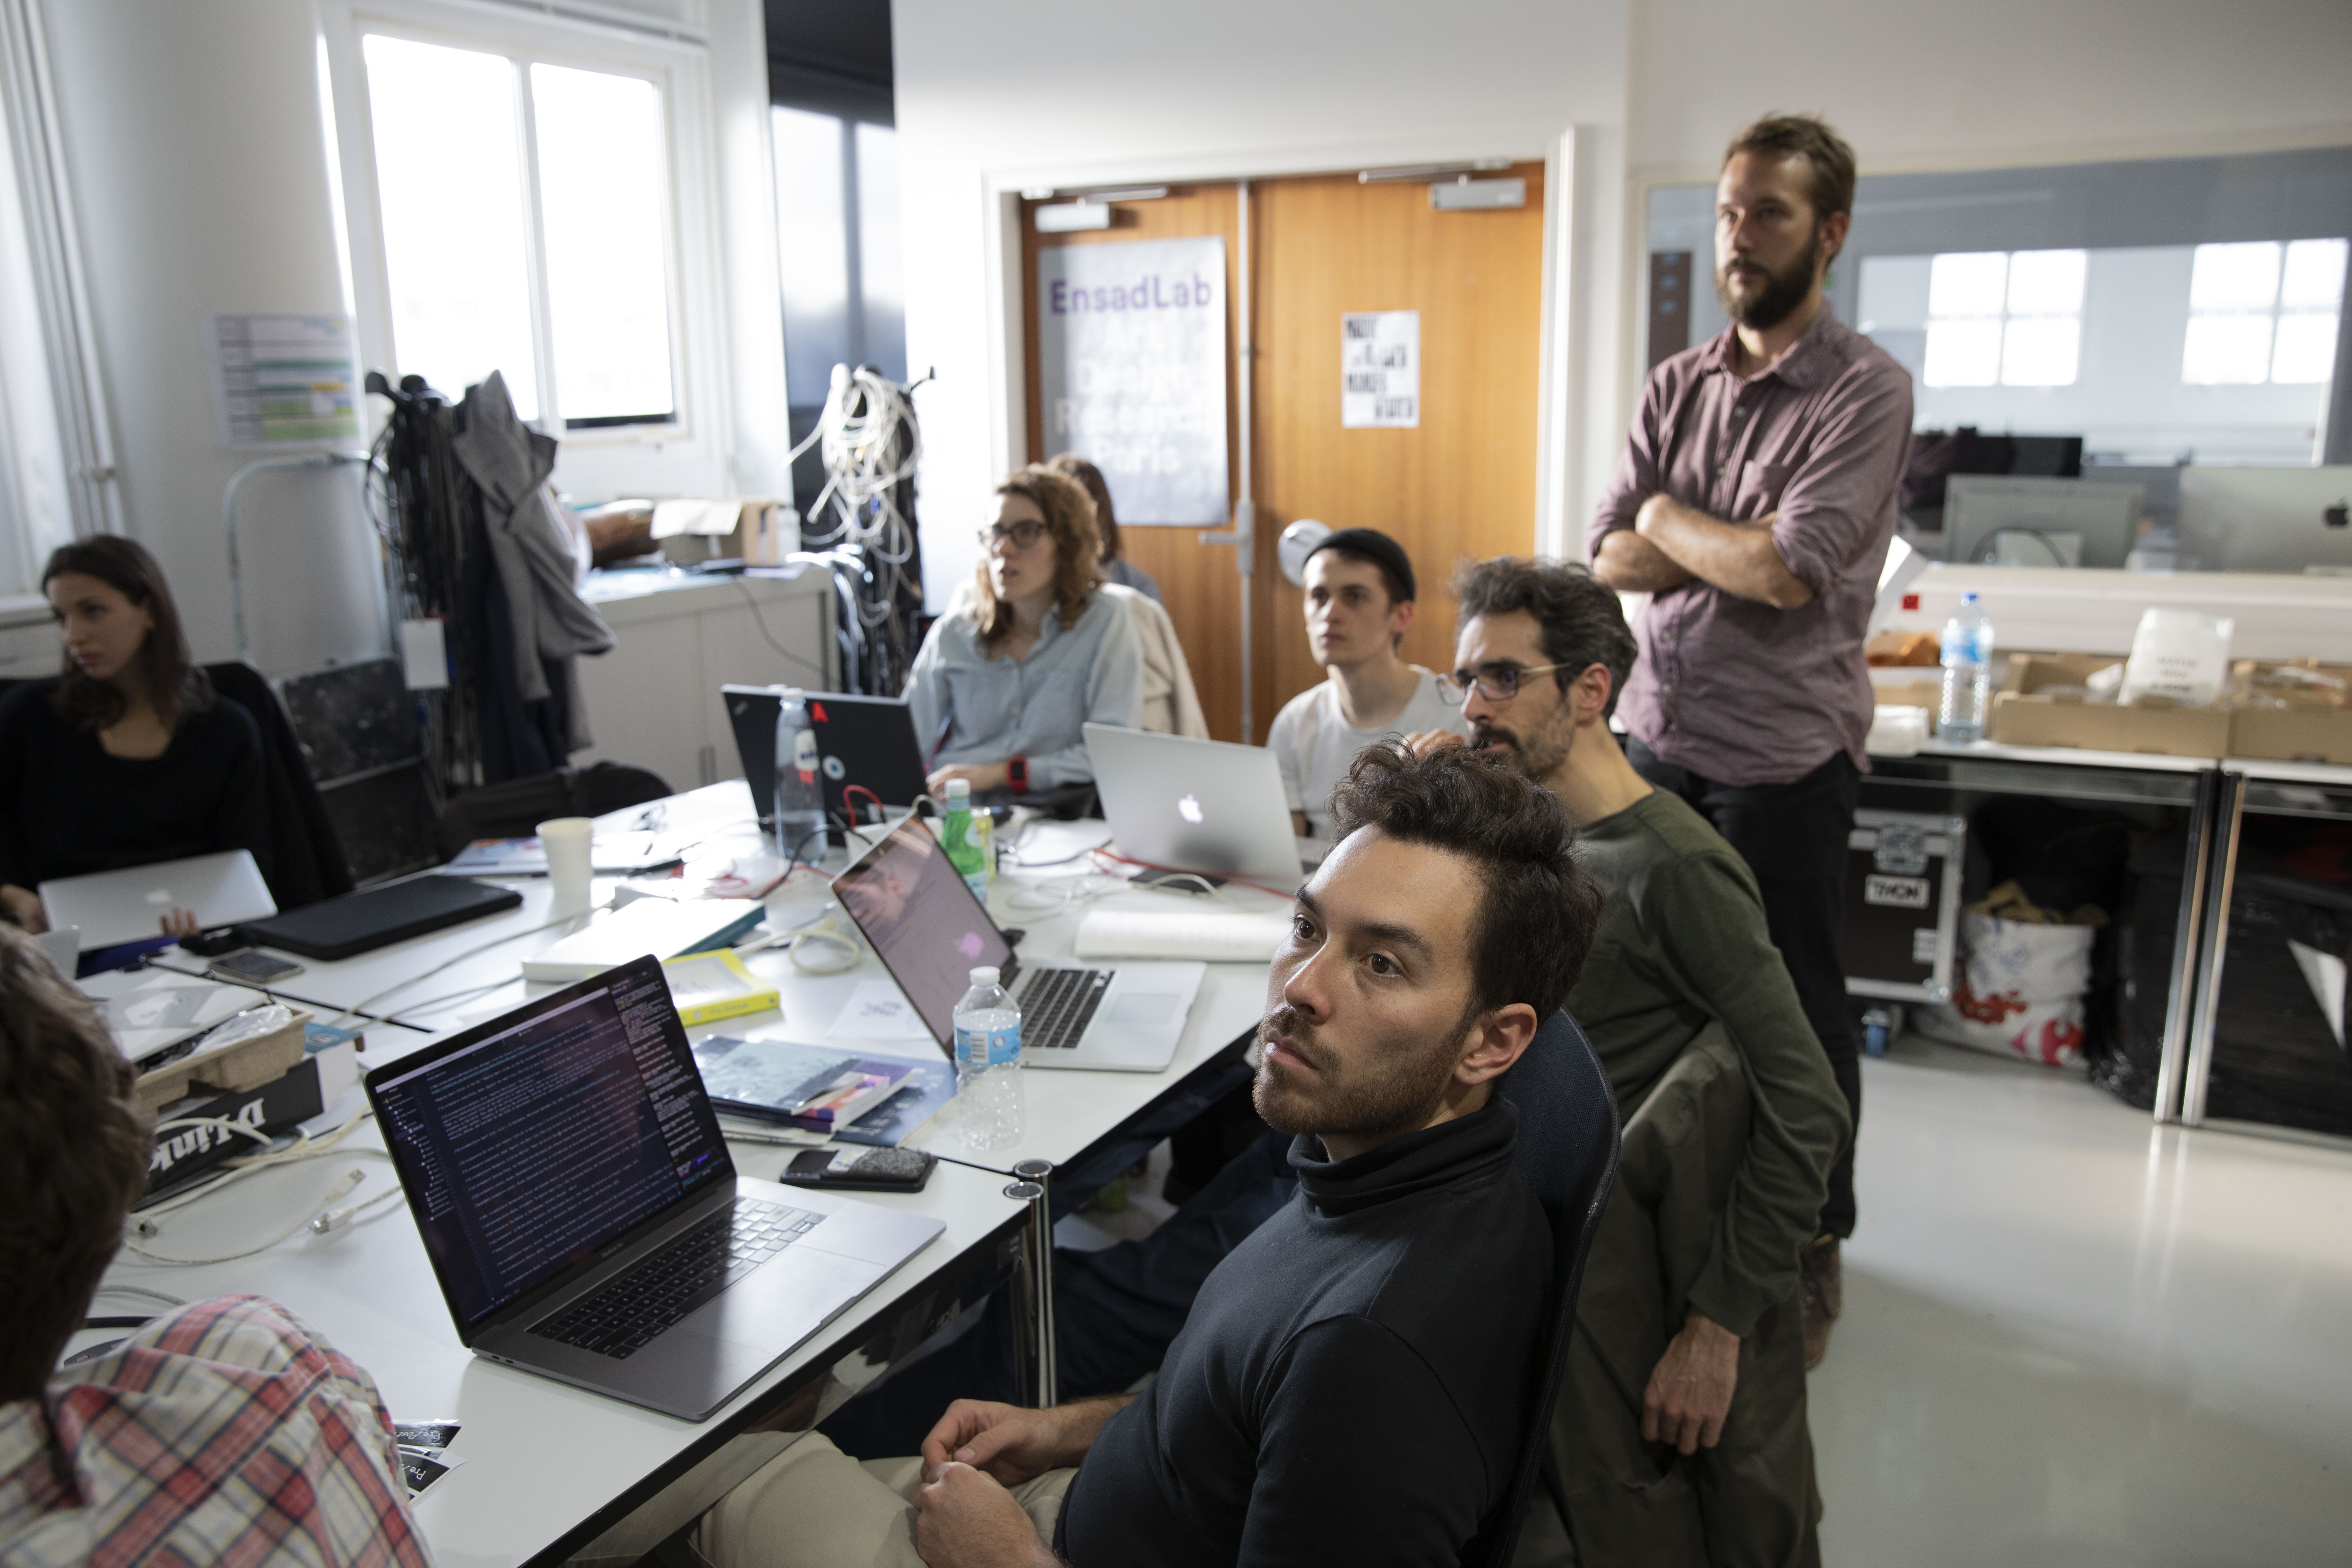 An overview of the Paged Media × PrePostPrint workshop